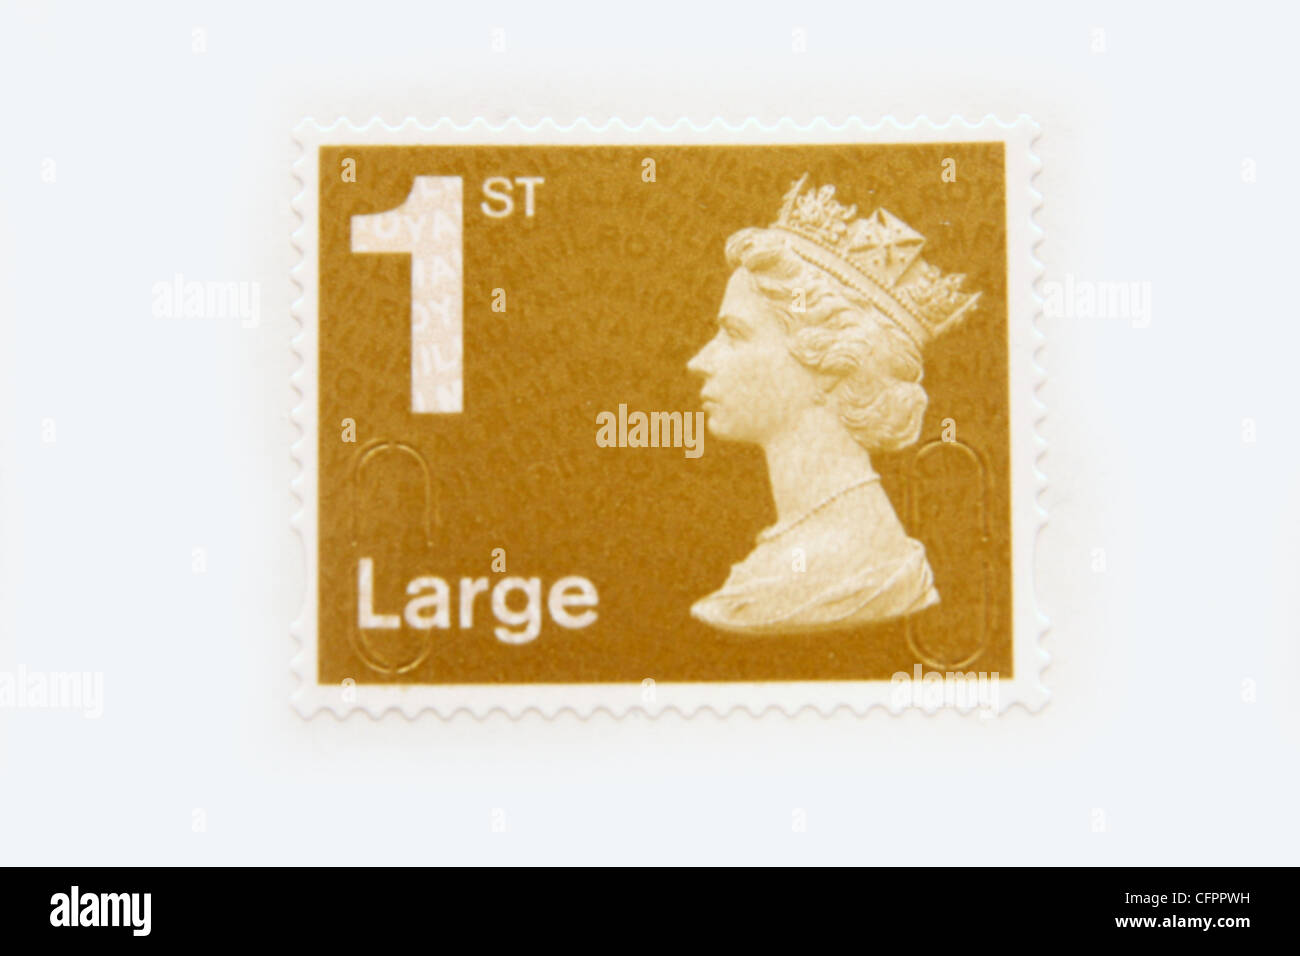 A UK 1st class large stamp. - Stock Image